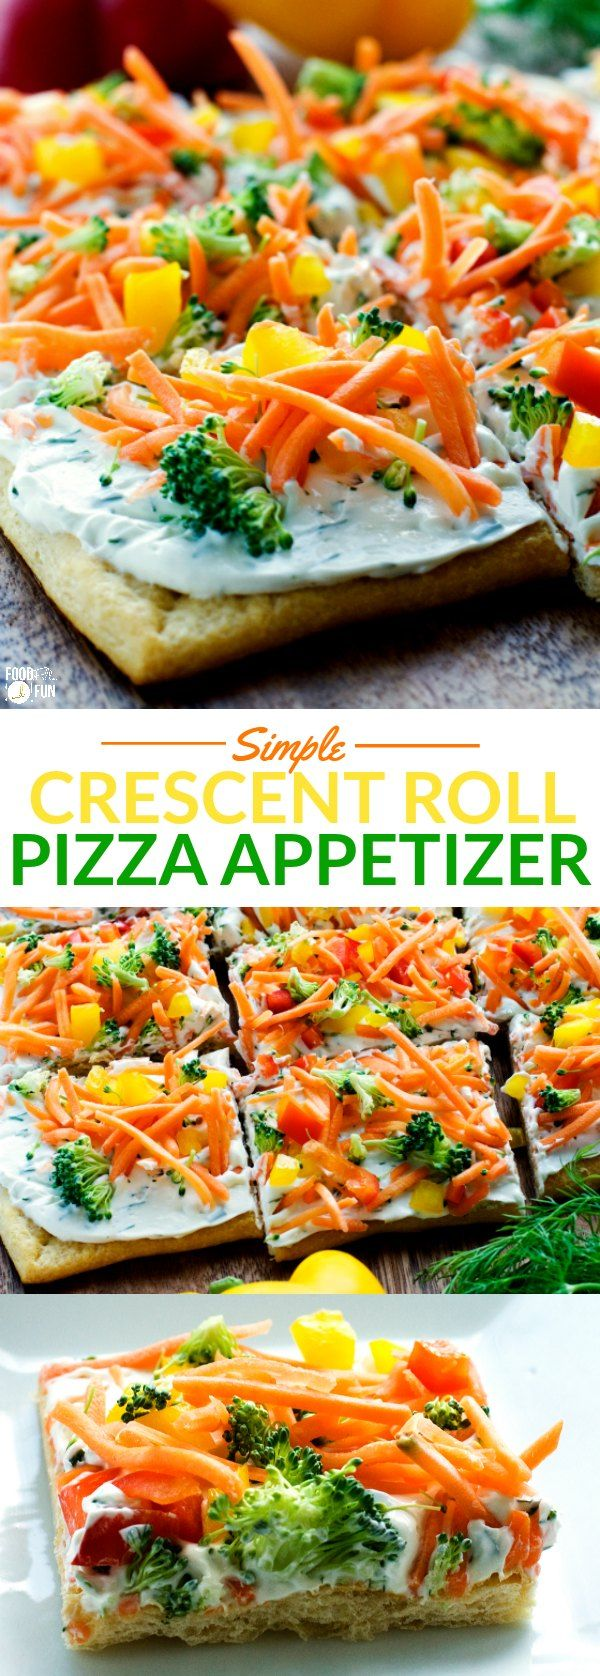 Easy appetizer recipes with crescent rolls